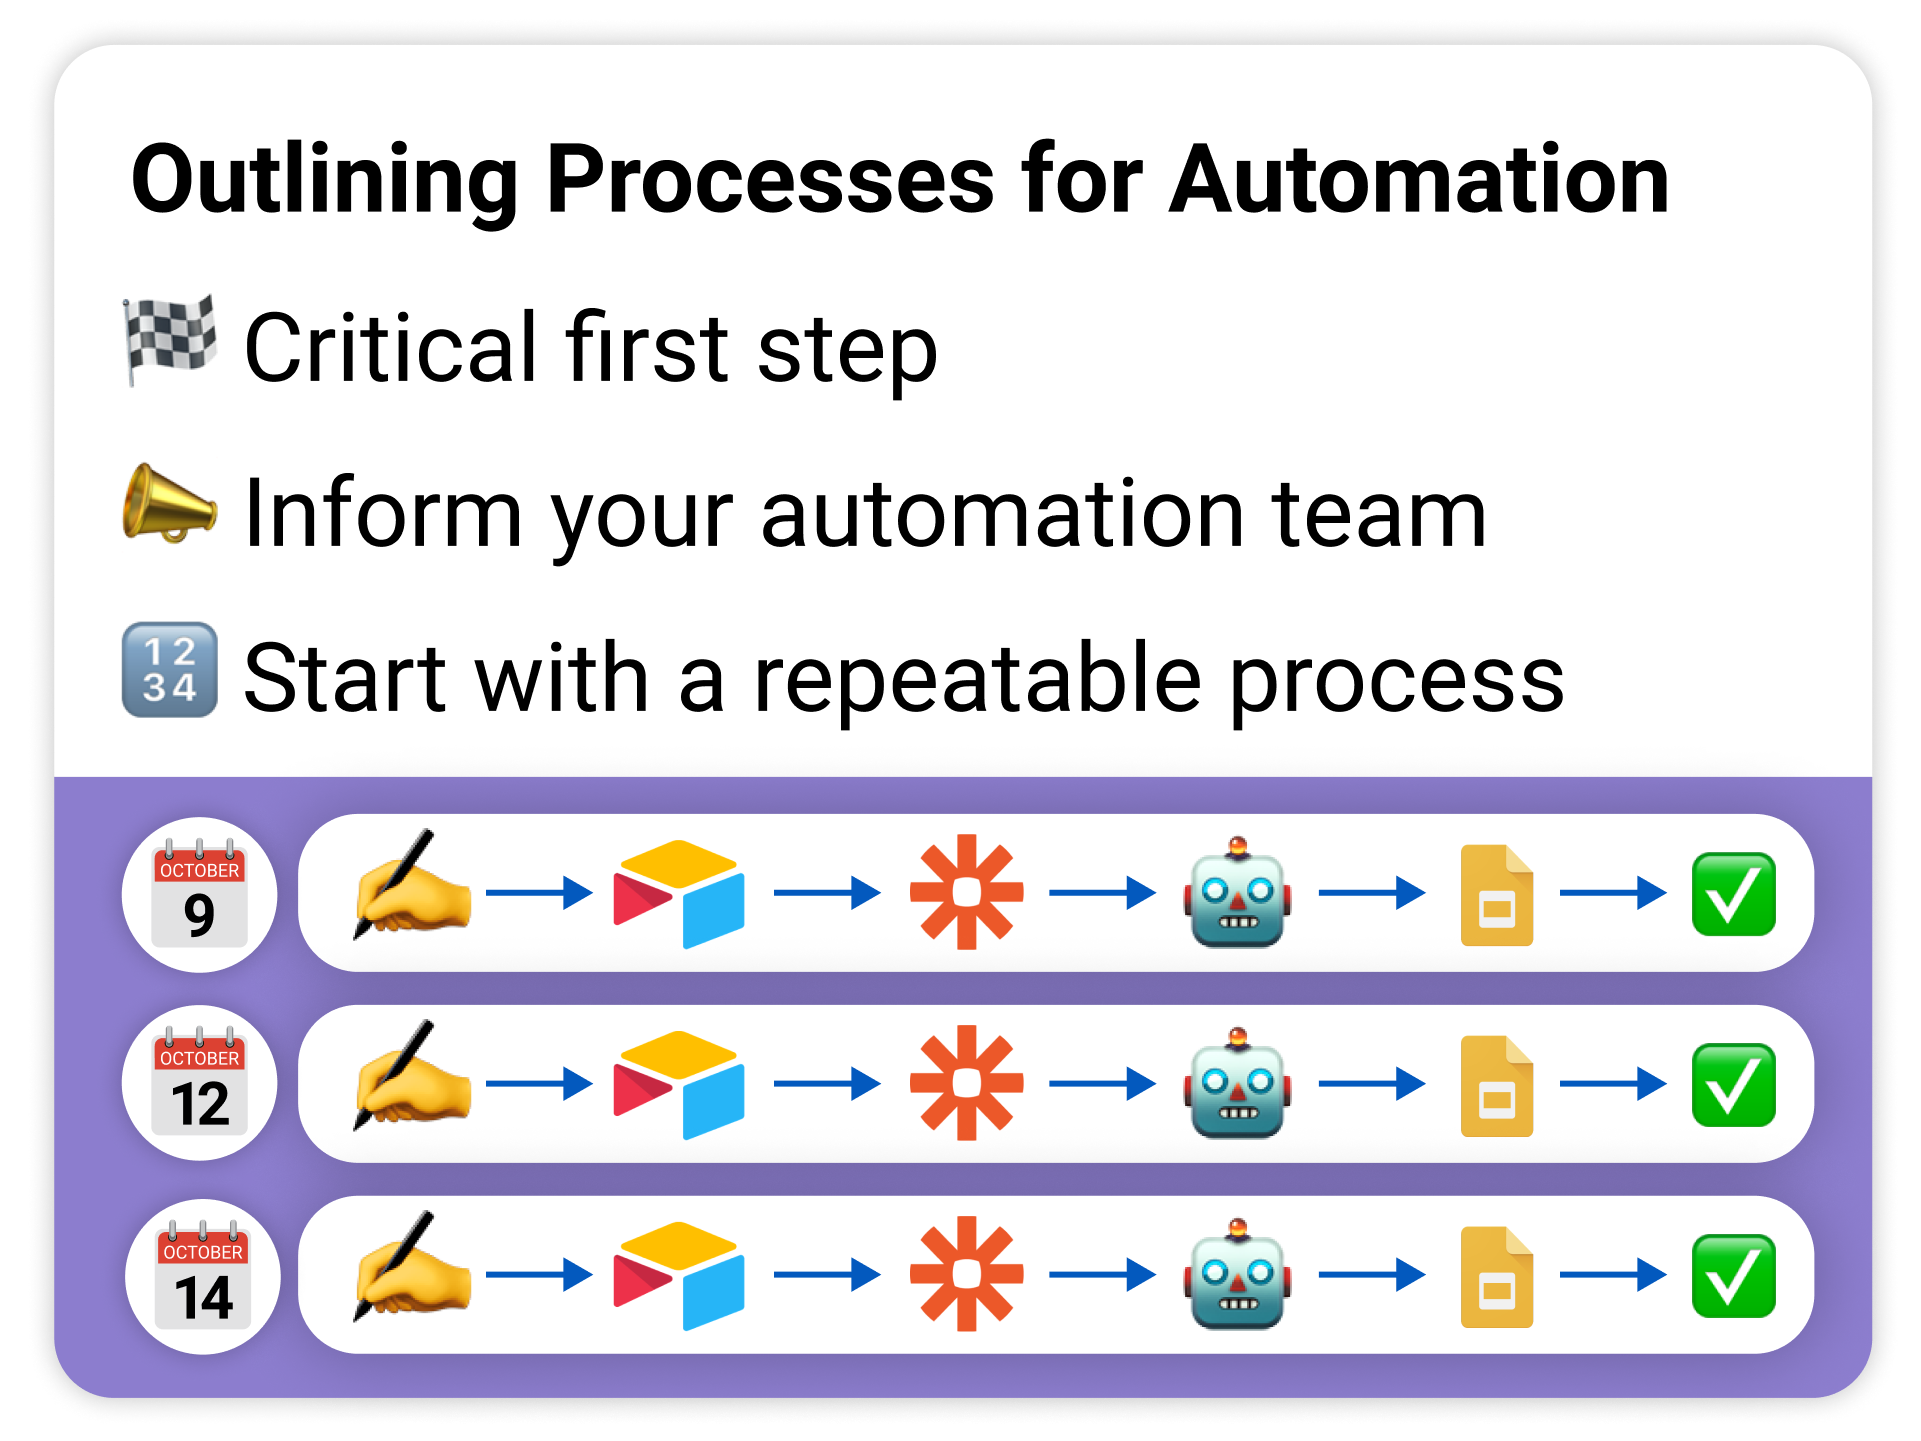 start with a repeatable process